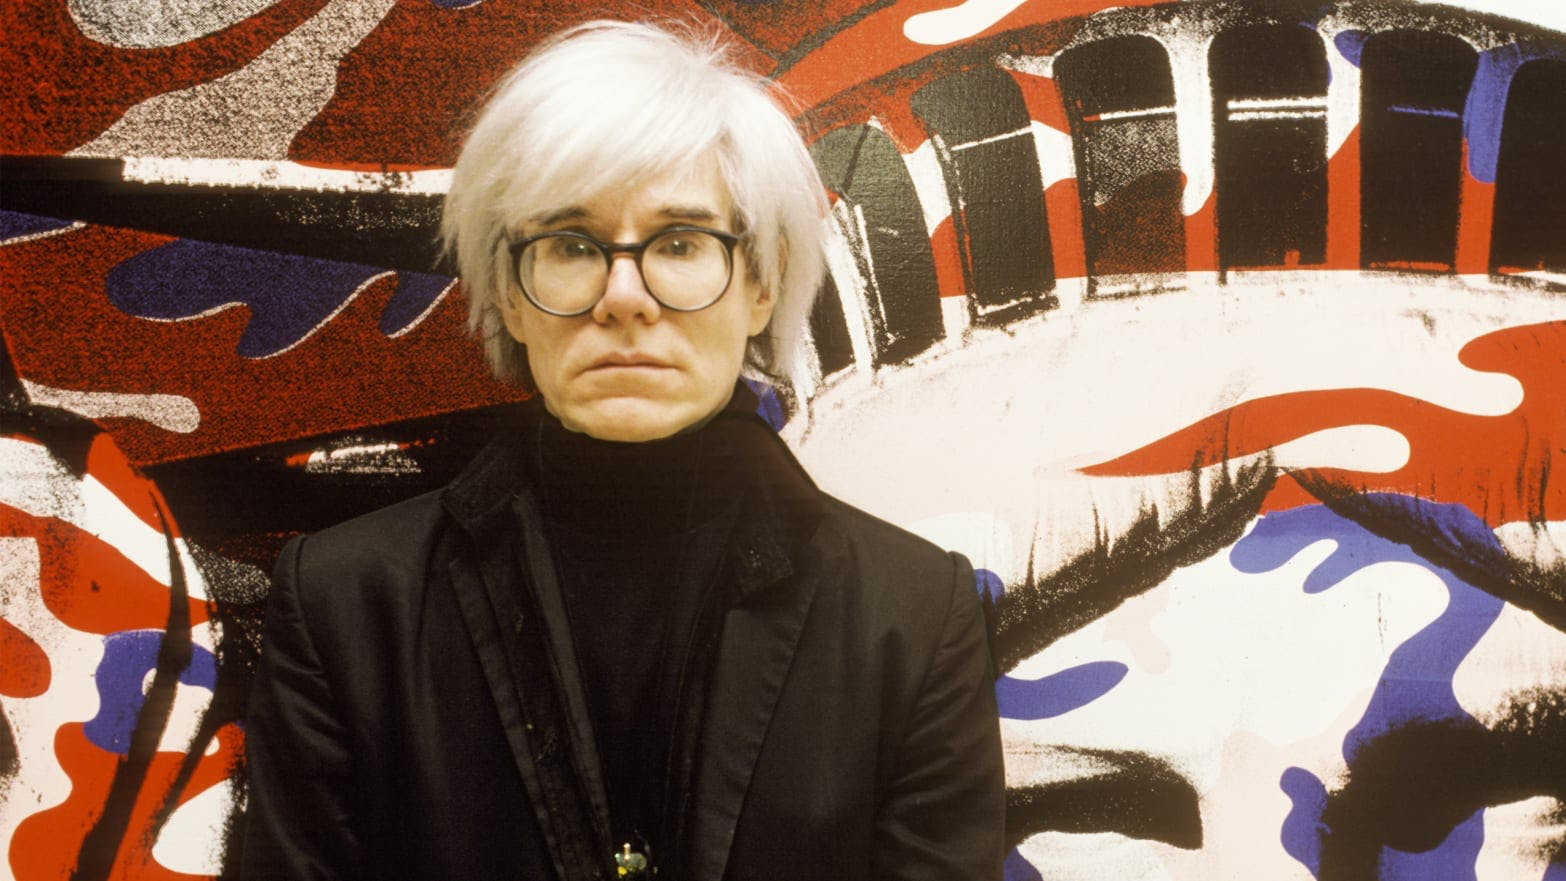 ANDY WARHOL FOUNDATION: $4M TO SUPPORT CONTEMPORARY ART